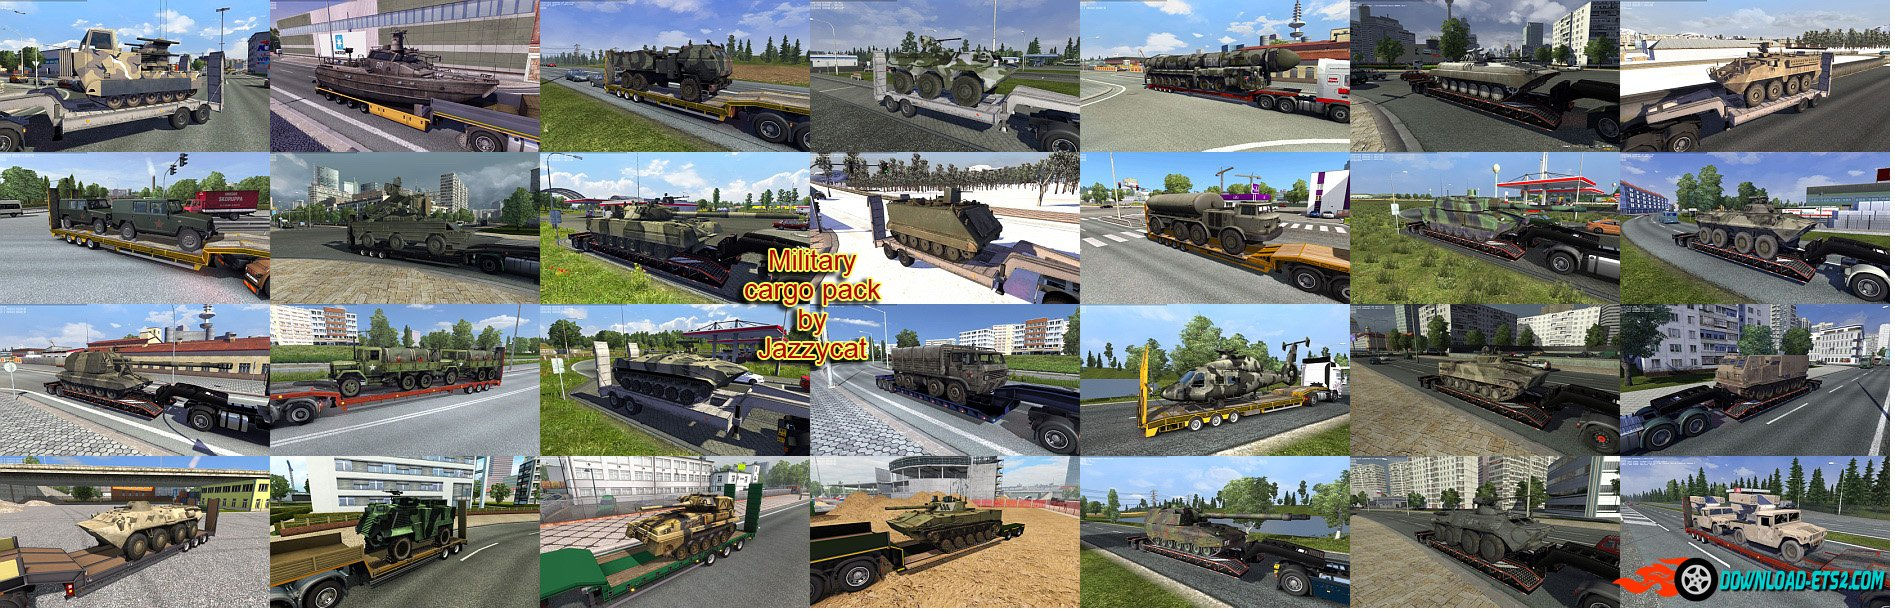 New Fix for Military Cargo Pack v1.7 by Jazzycat [1.23.x]